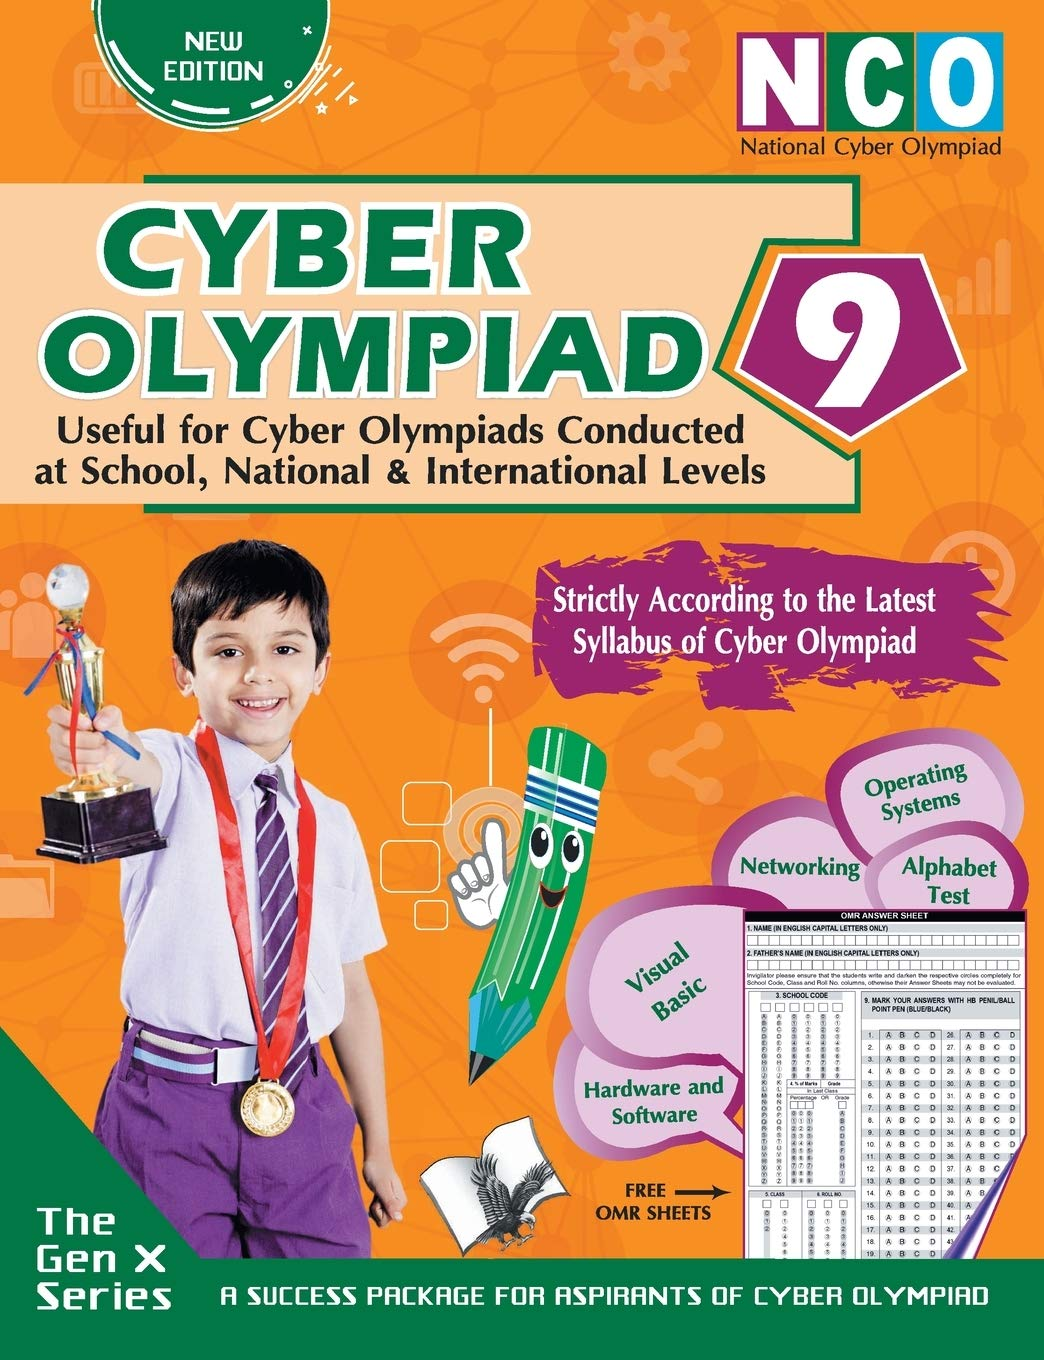 Cyber Olympiad 9 (Useful for Cyber Olympiads Conducted at School, National & International Levels)